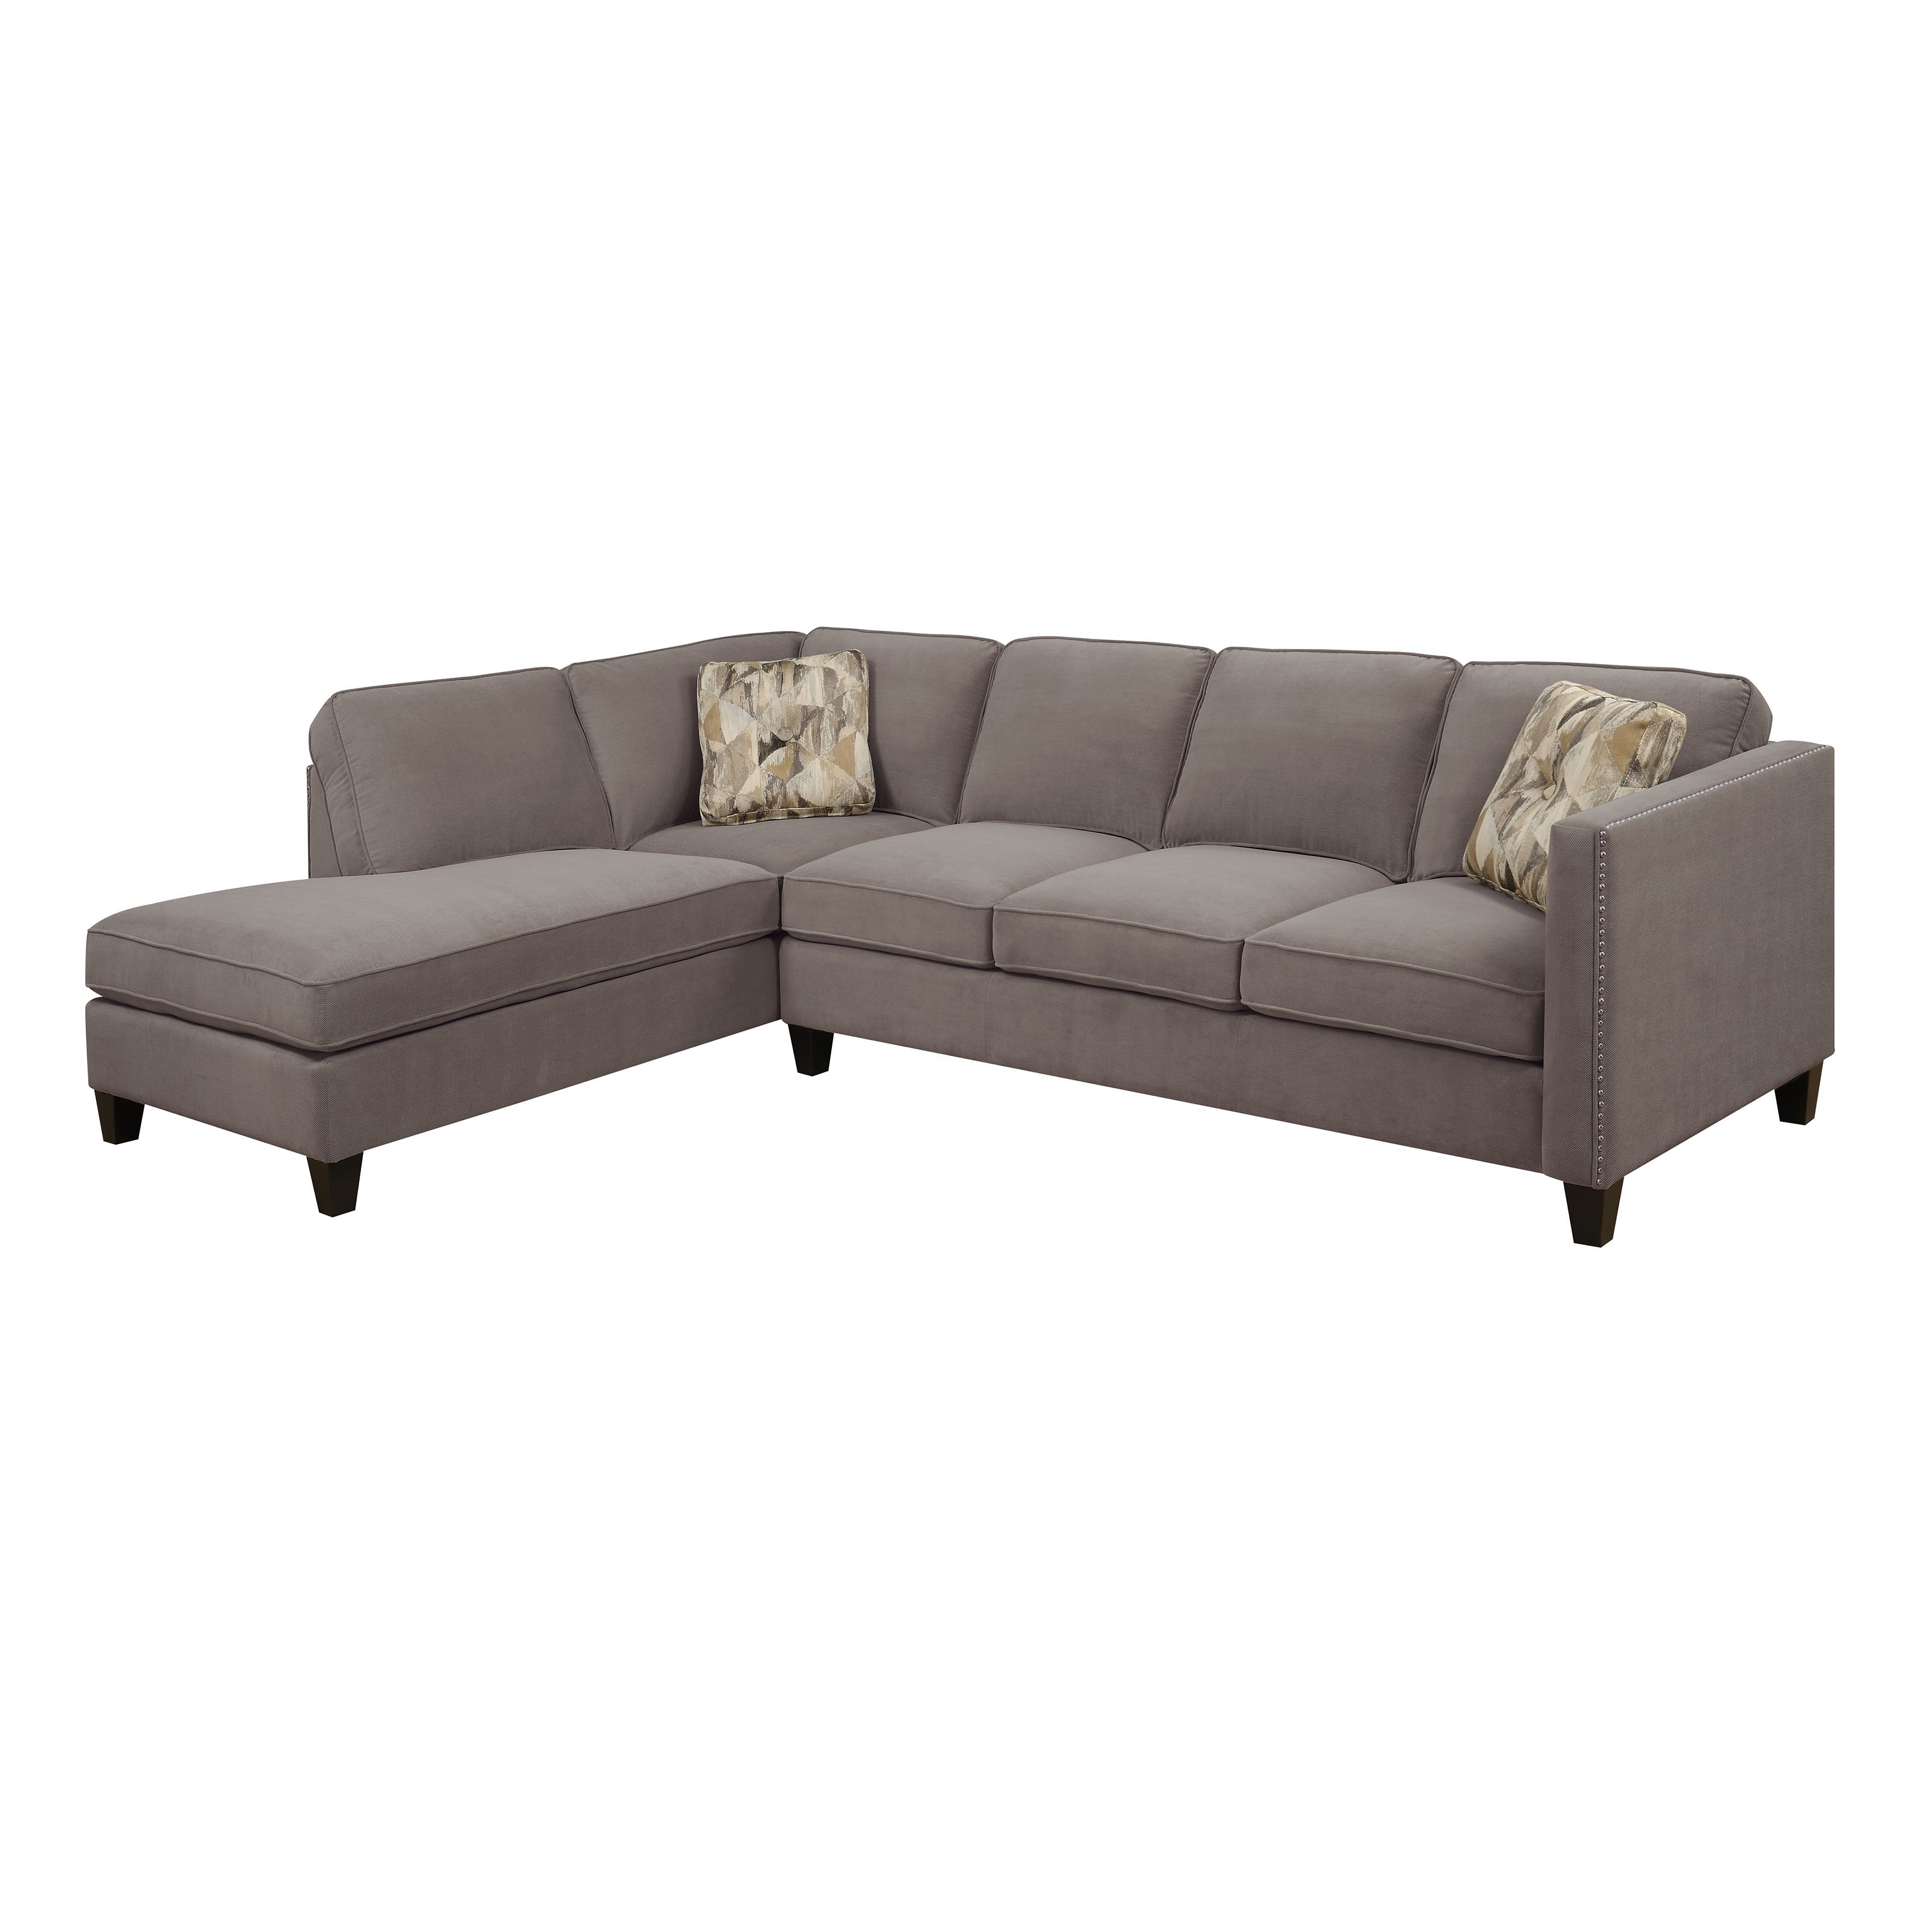 Overstock Sectional Sofas Throughout 2018 Emerald Home Focus 2 Piece Sectional Sofa With Chaise (View 7 of 15)